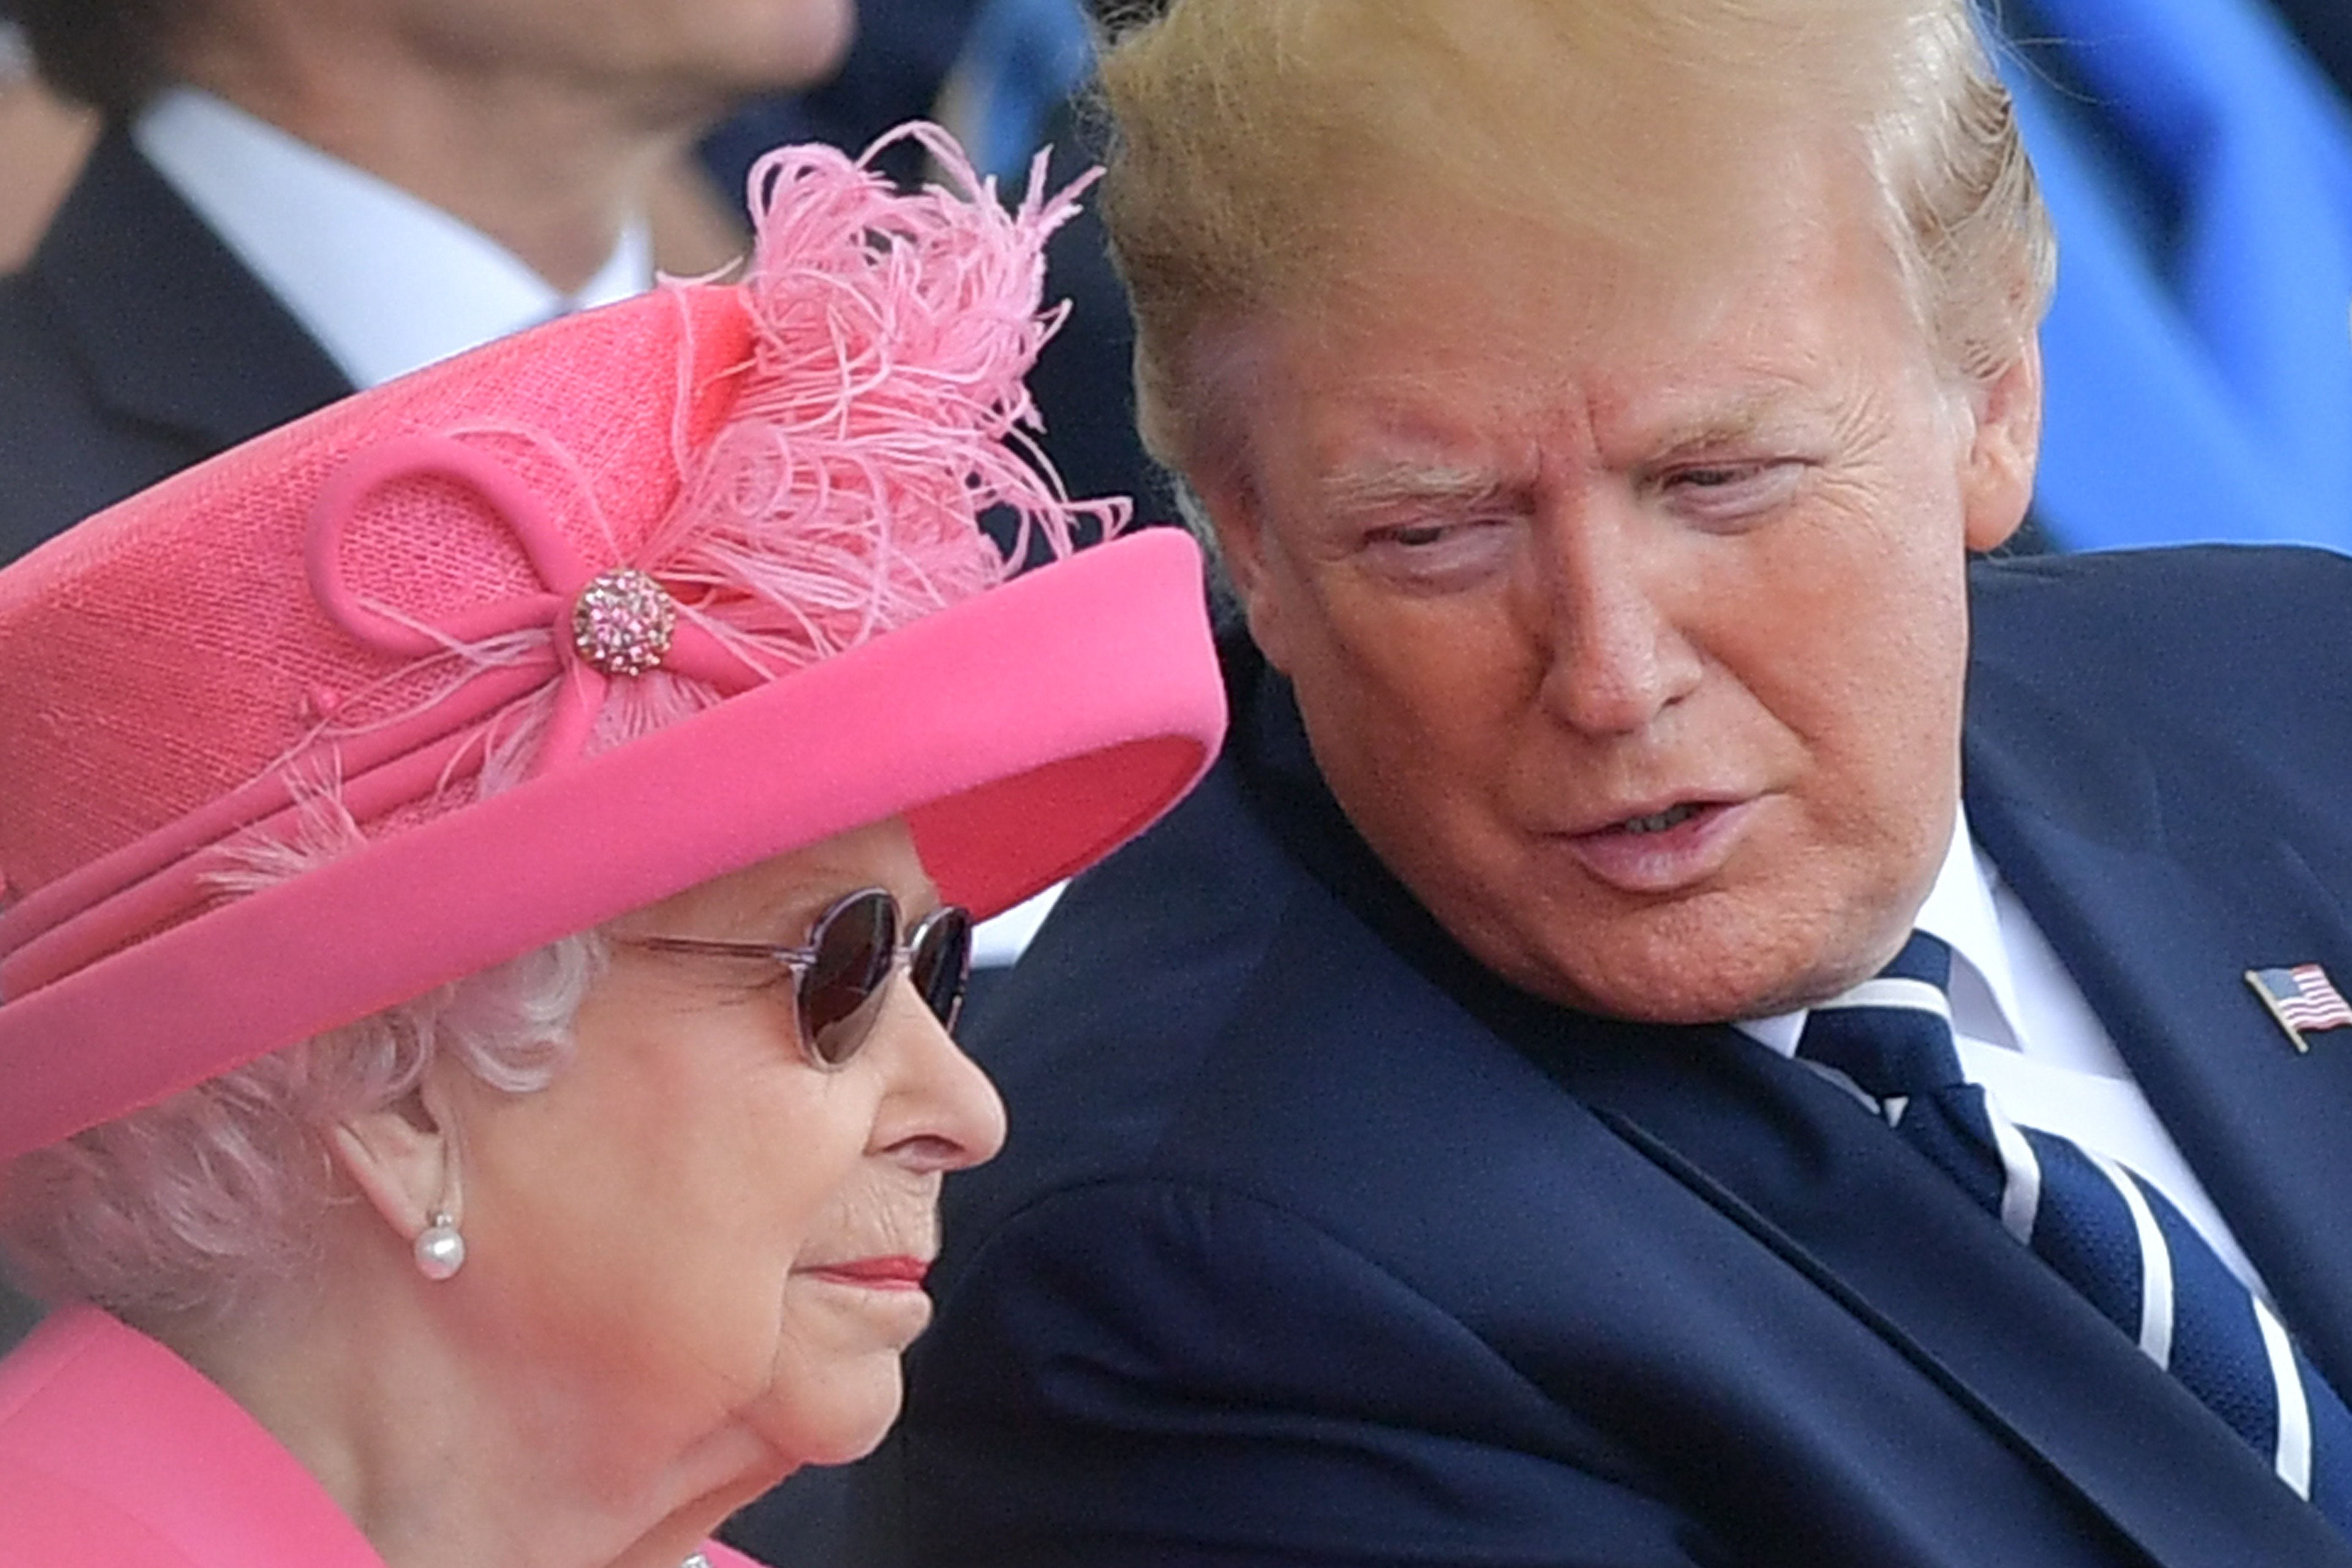 Trump joins Queen Elizabeth II for D-Day anniversary in Portsmouth